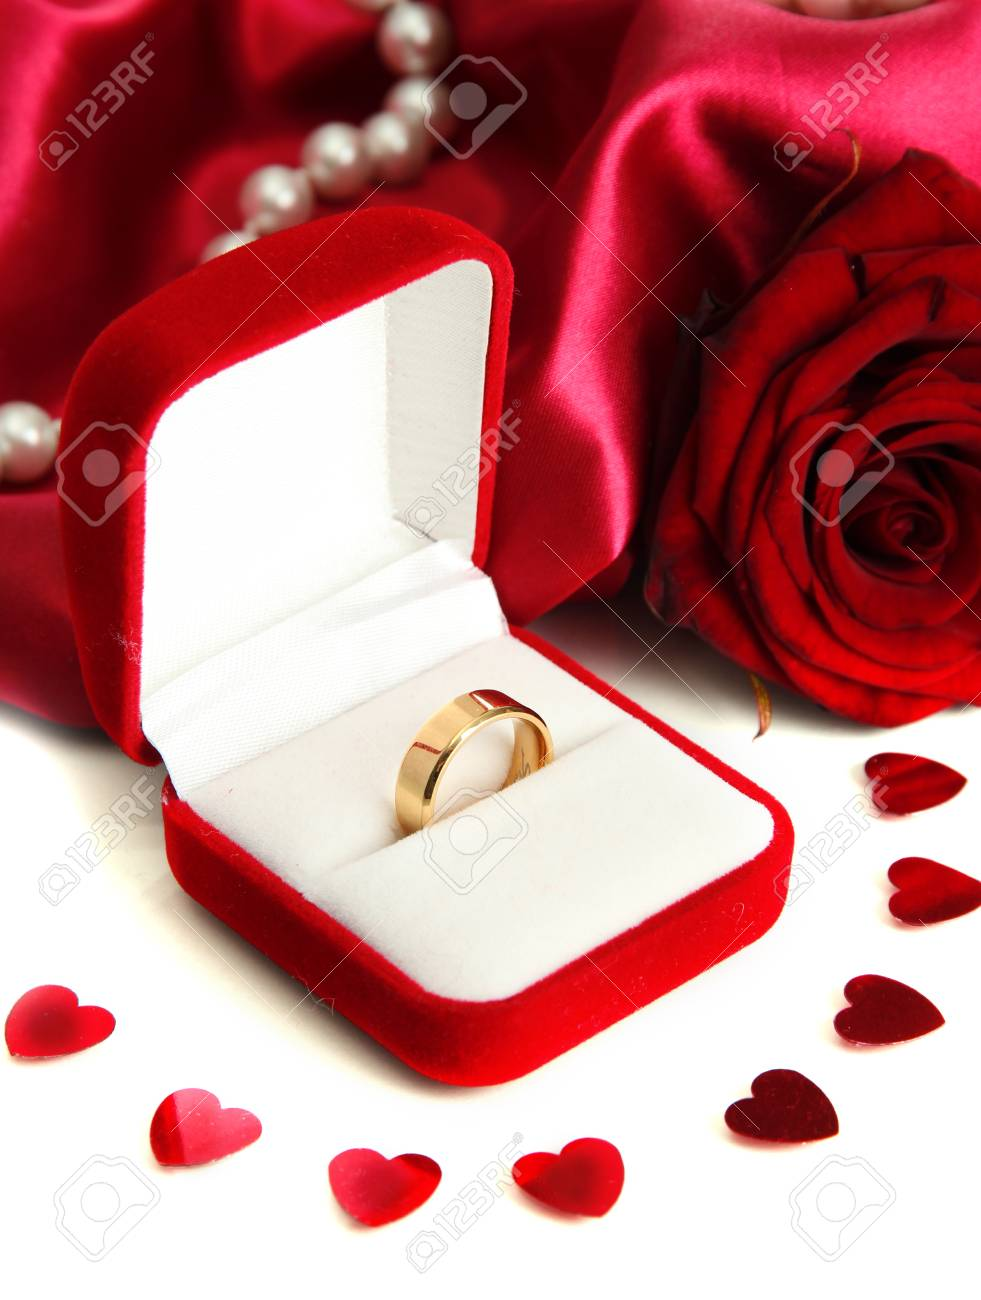 b0433666c Beautiful box with wedding ring and rose on red silk background Stock Photo  - 17704463